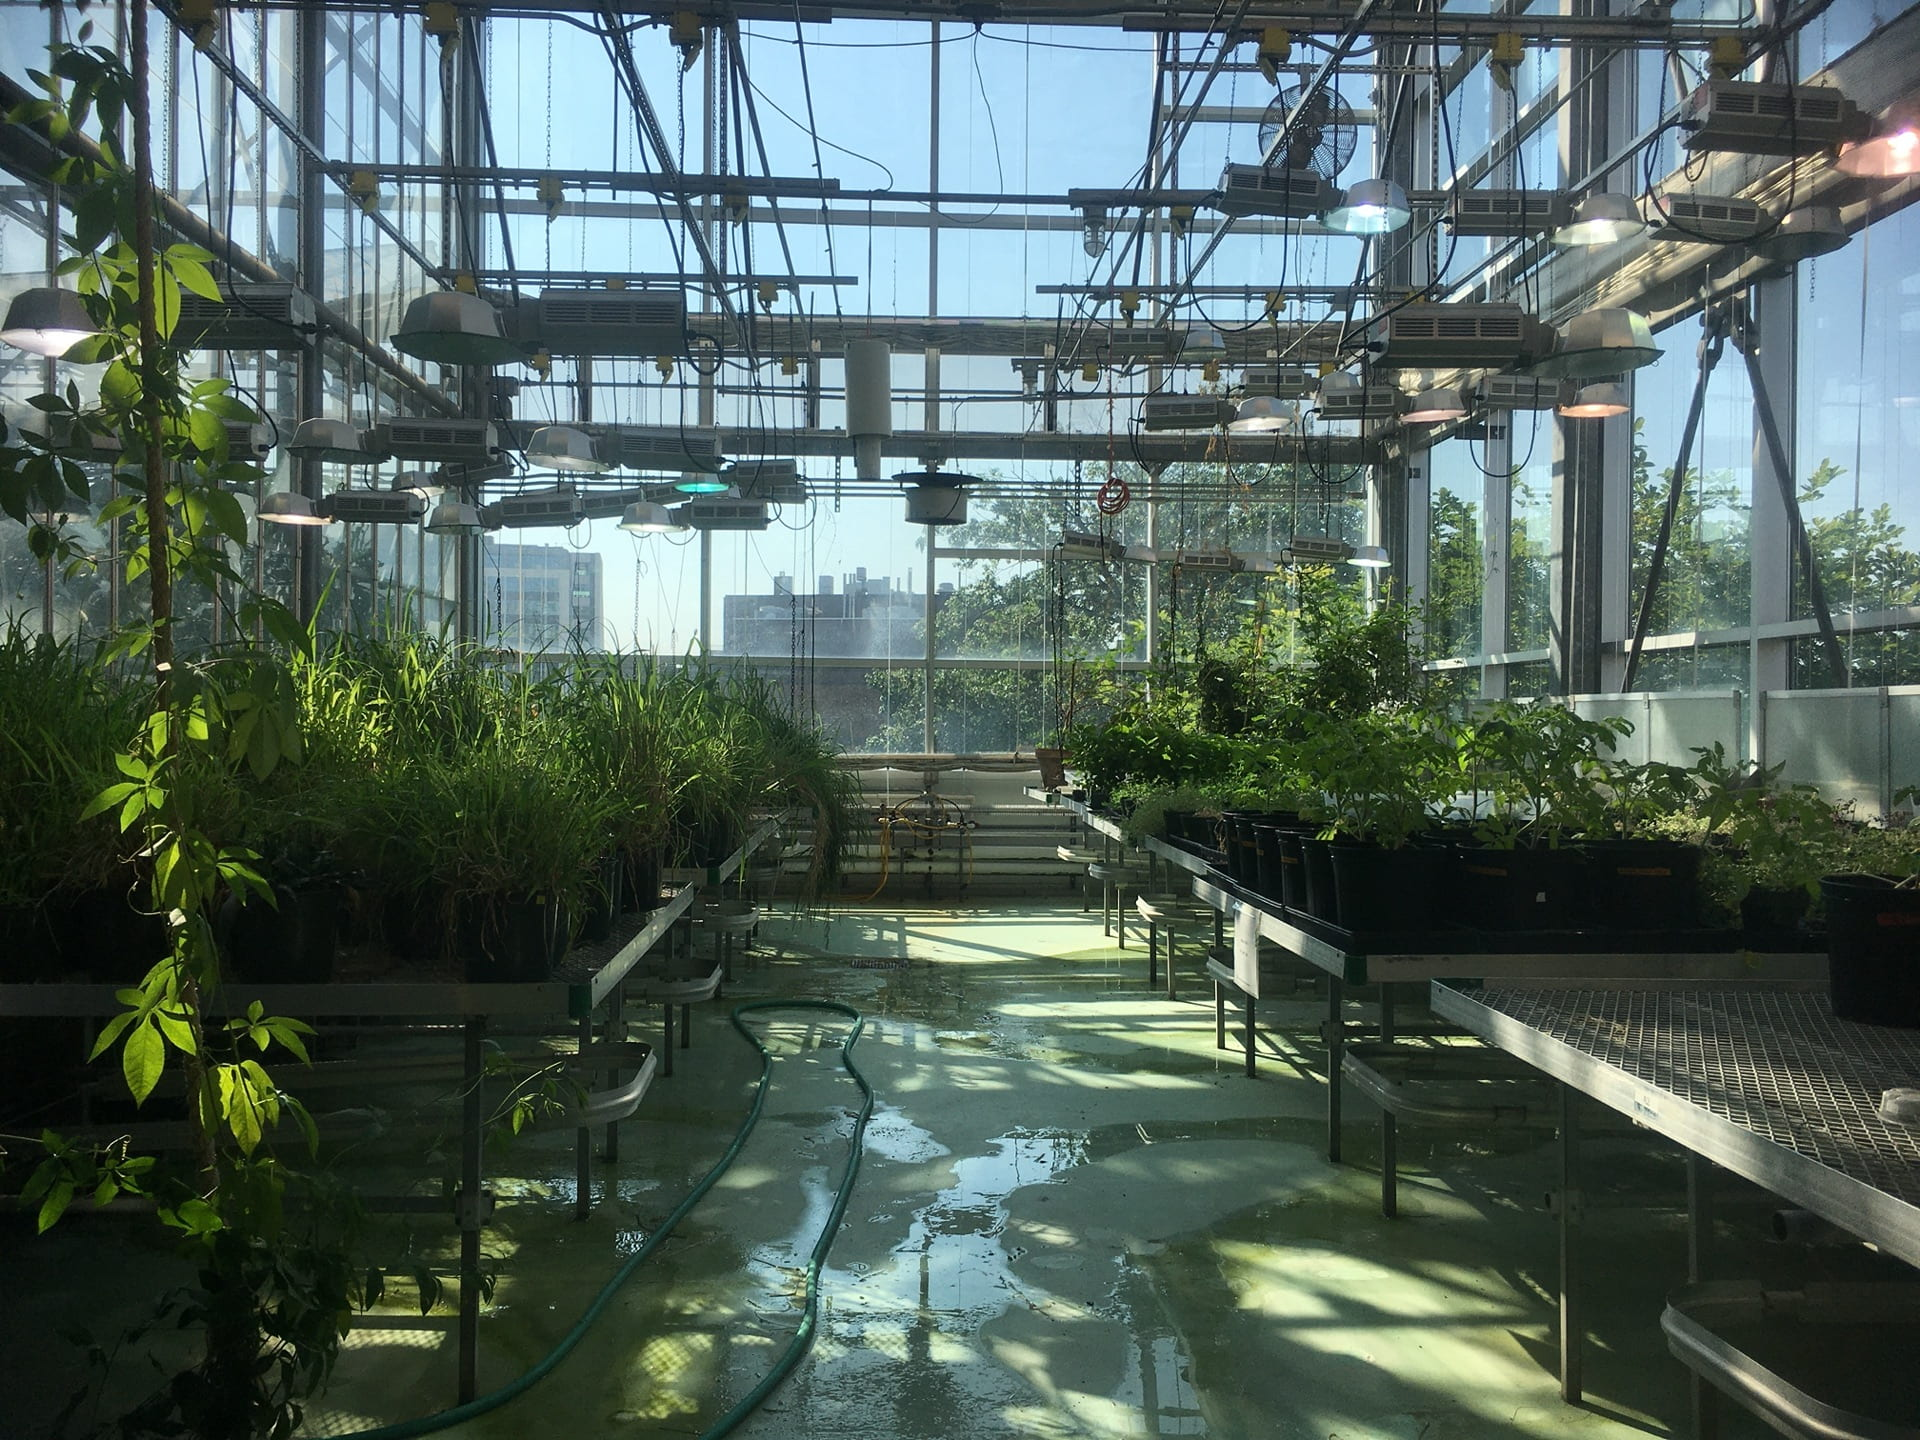 The longview of the Research Greenhouse.